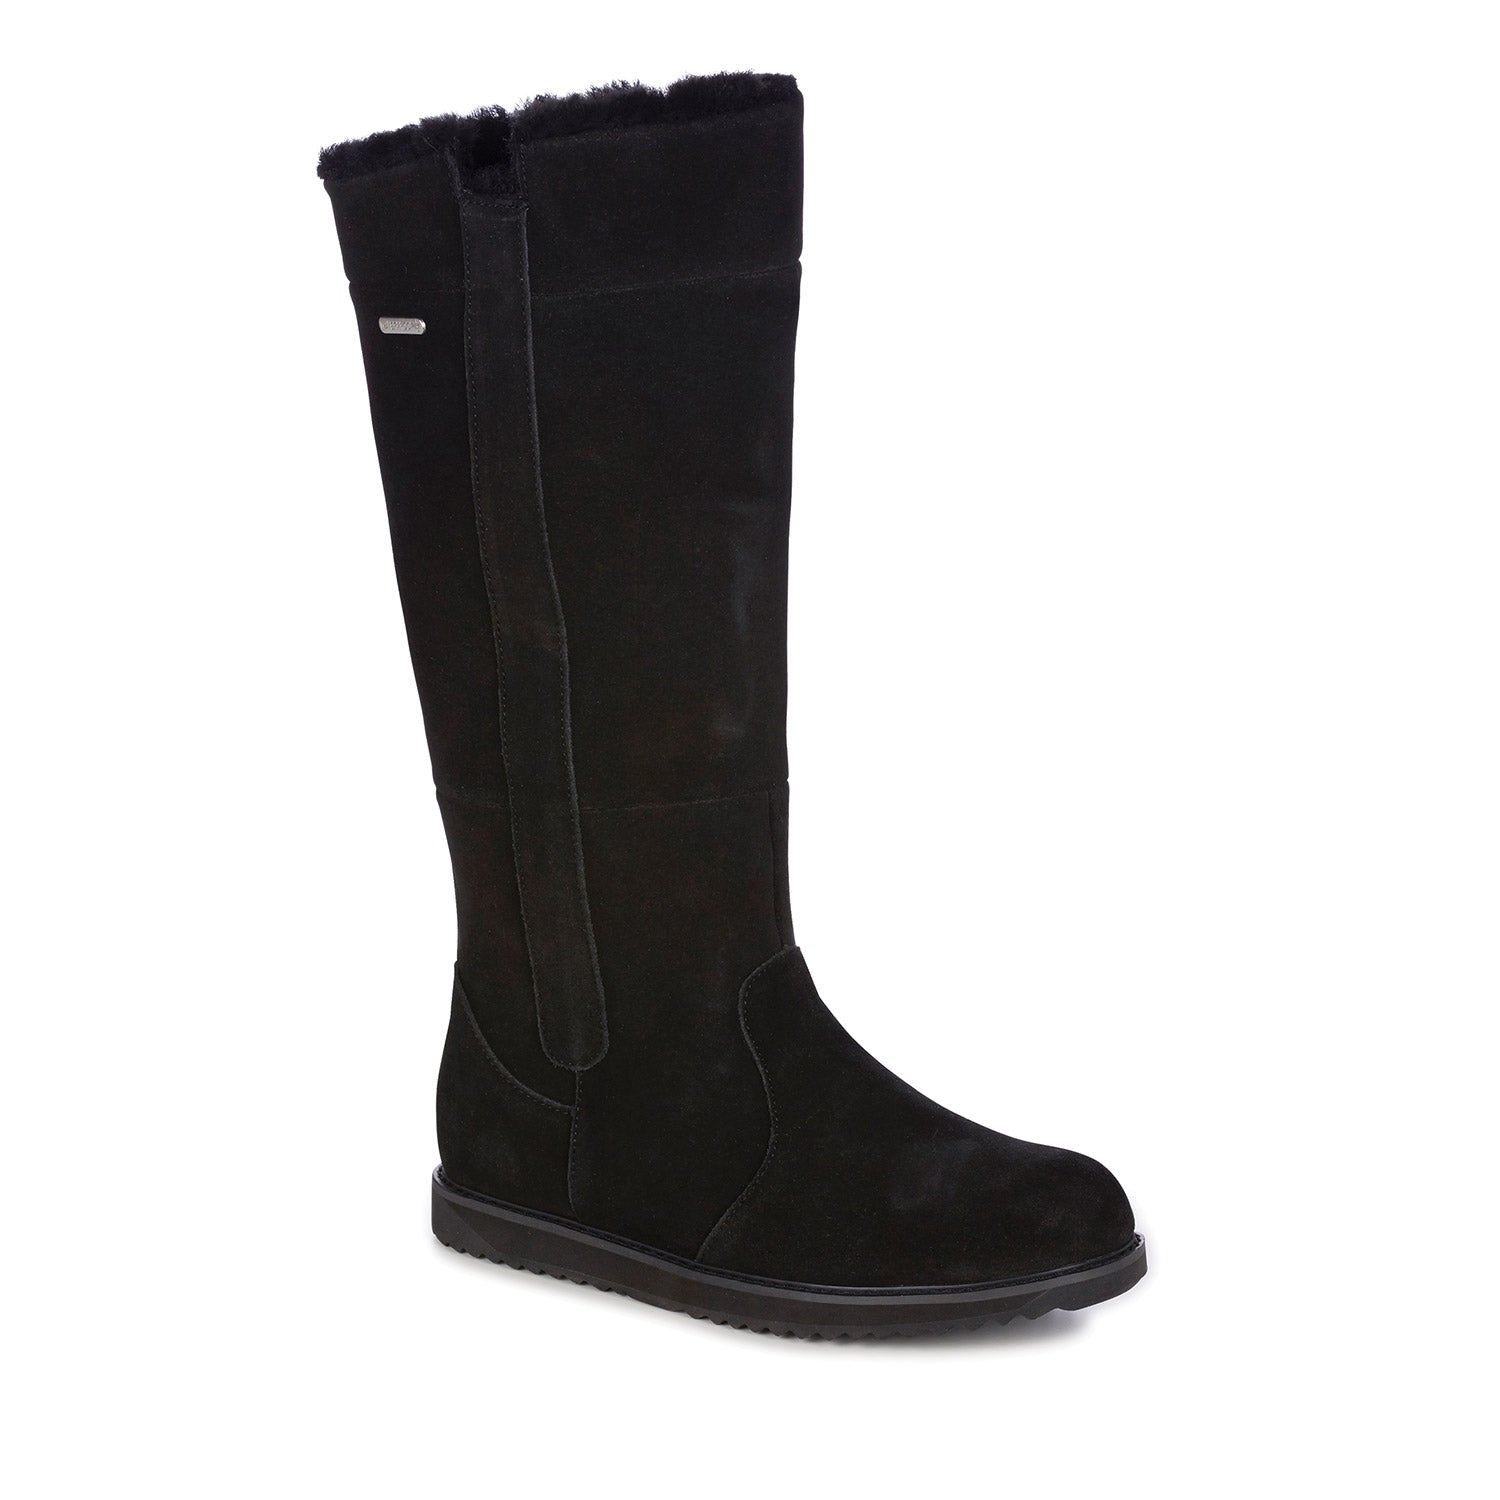 Moonta Black Waterproof Boots